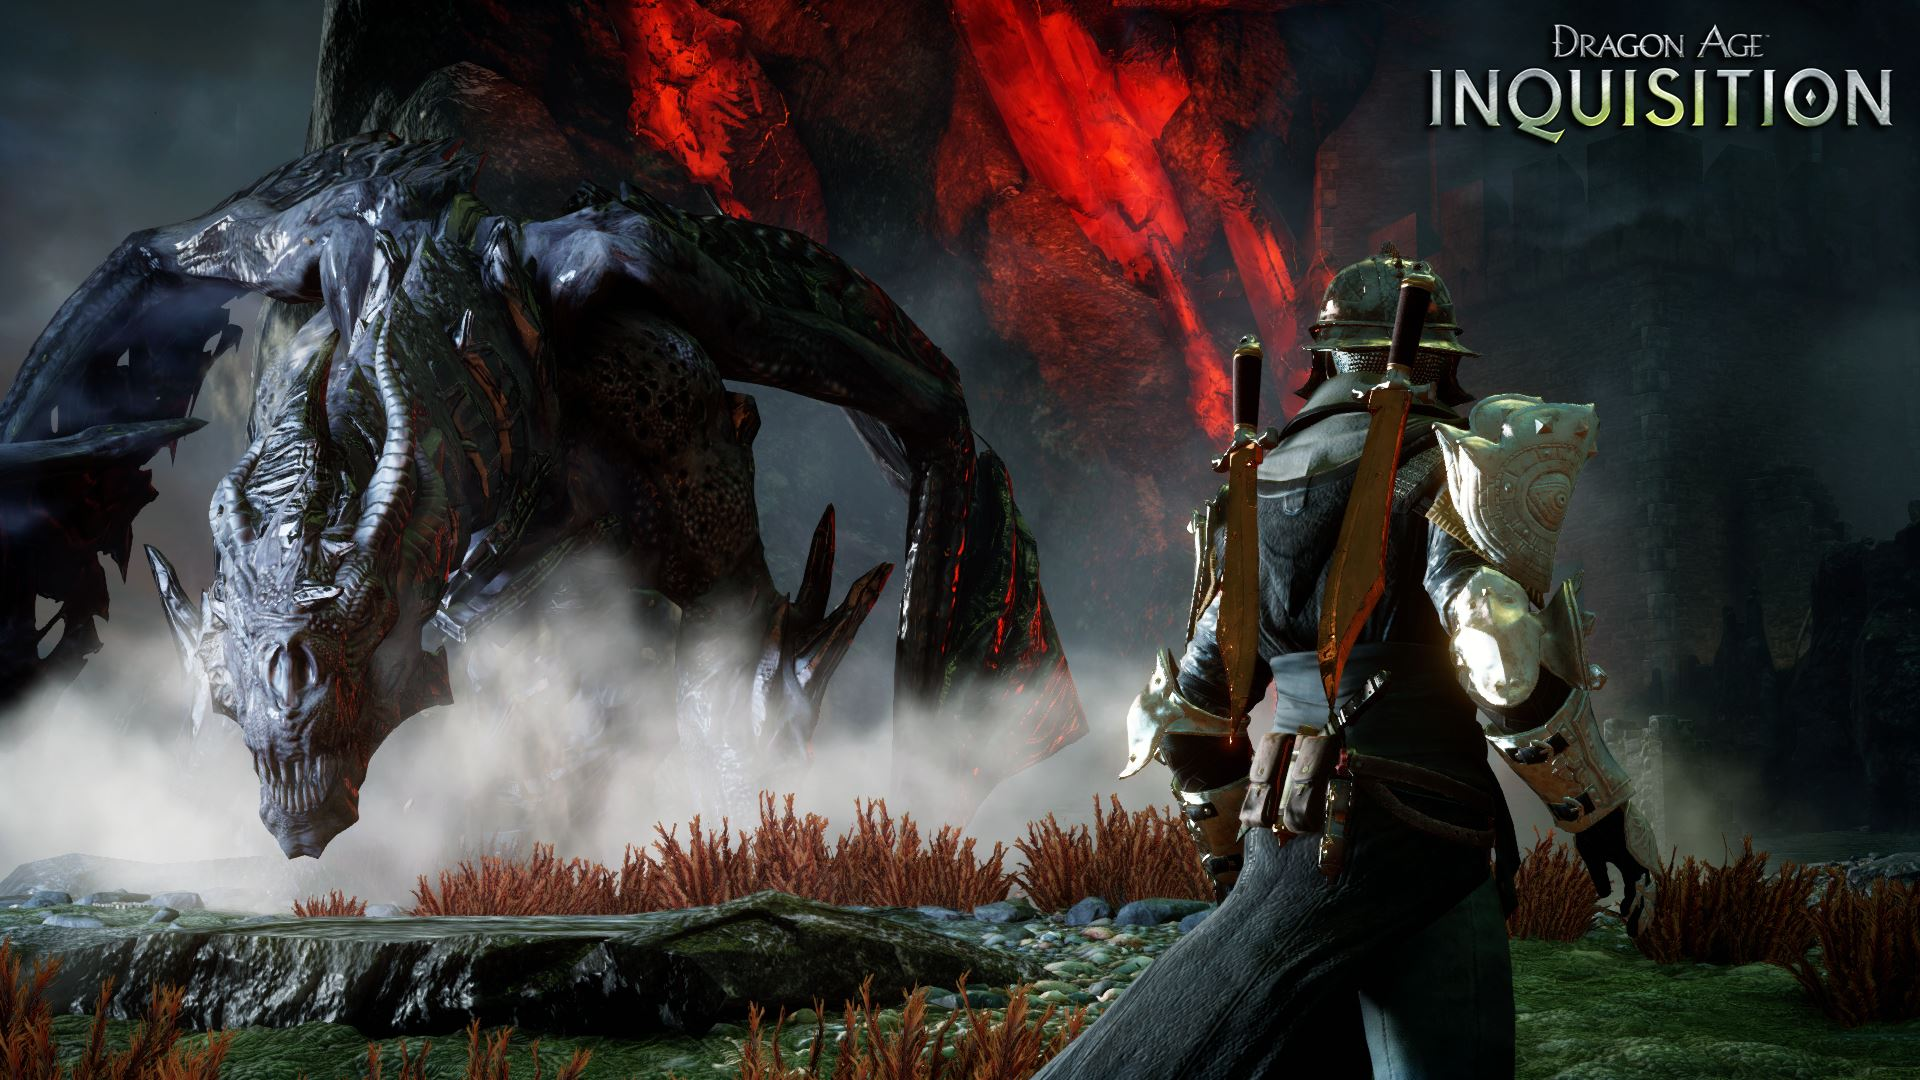 No One Expects Dragons in the Inquisition—A Dragon Age Primer [GIFs]